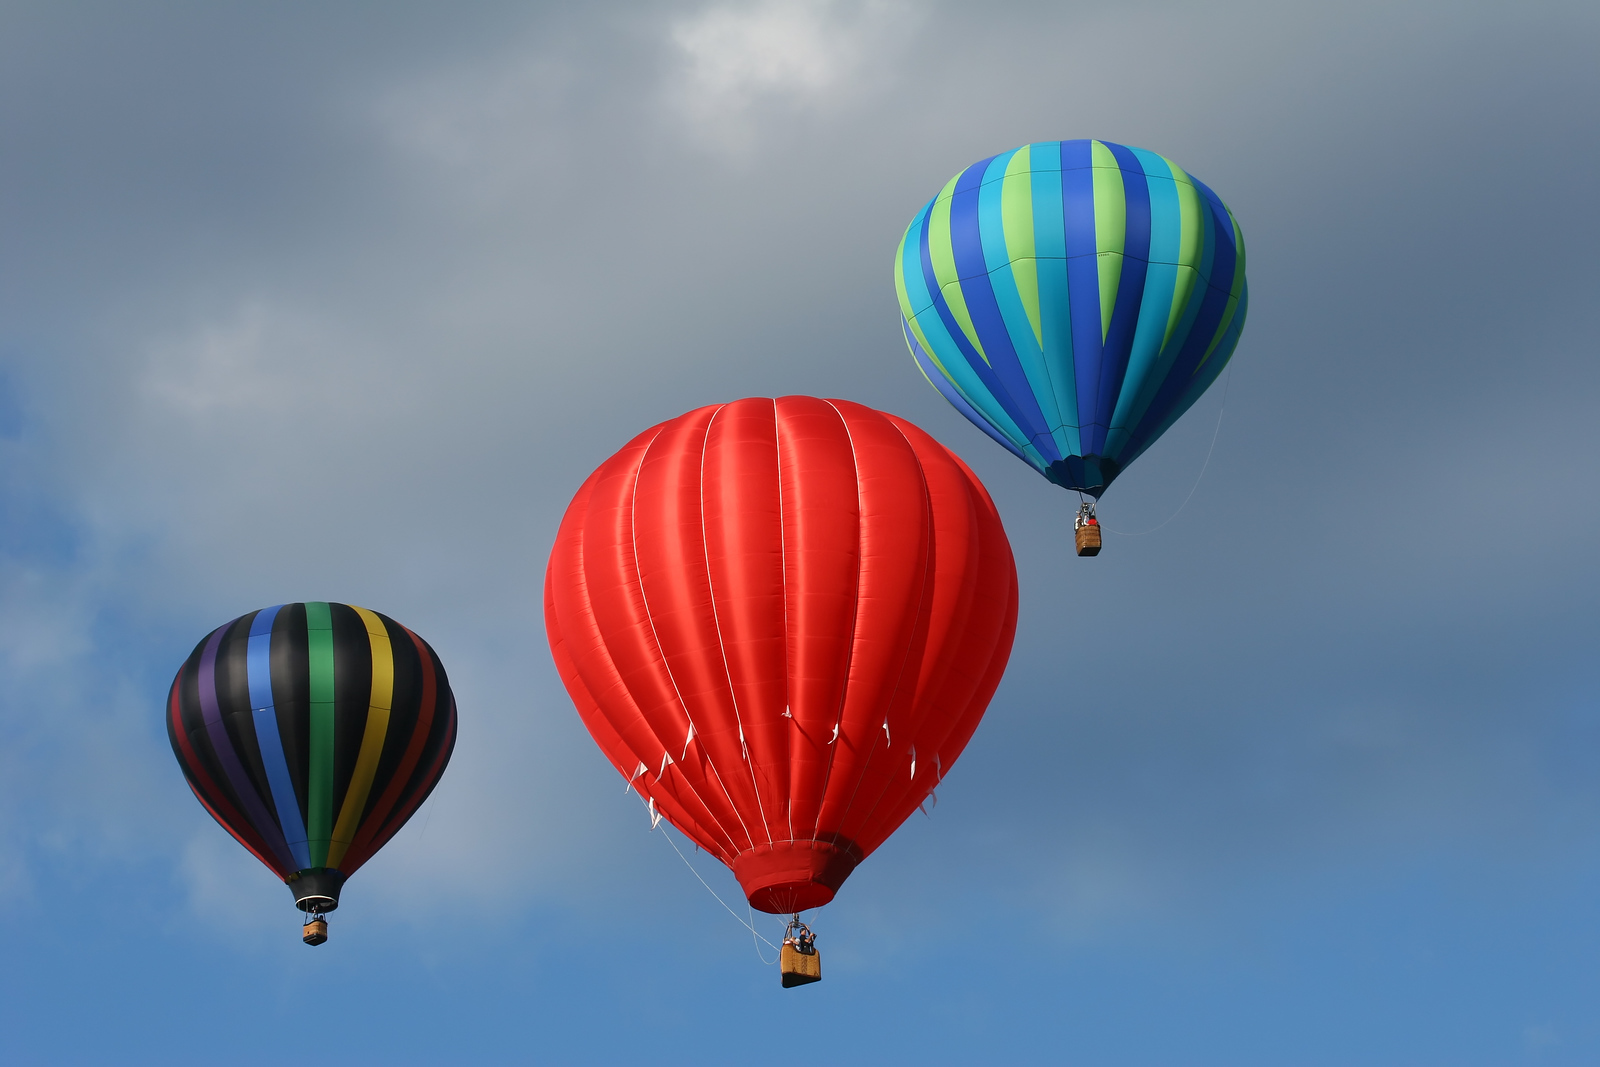 three hot air balloons in the cloudy blue sky